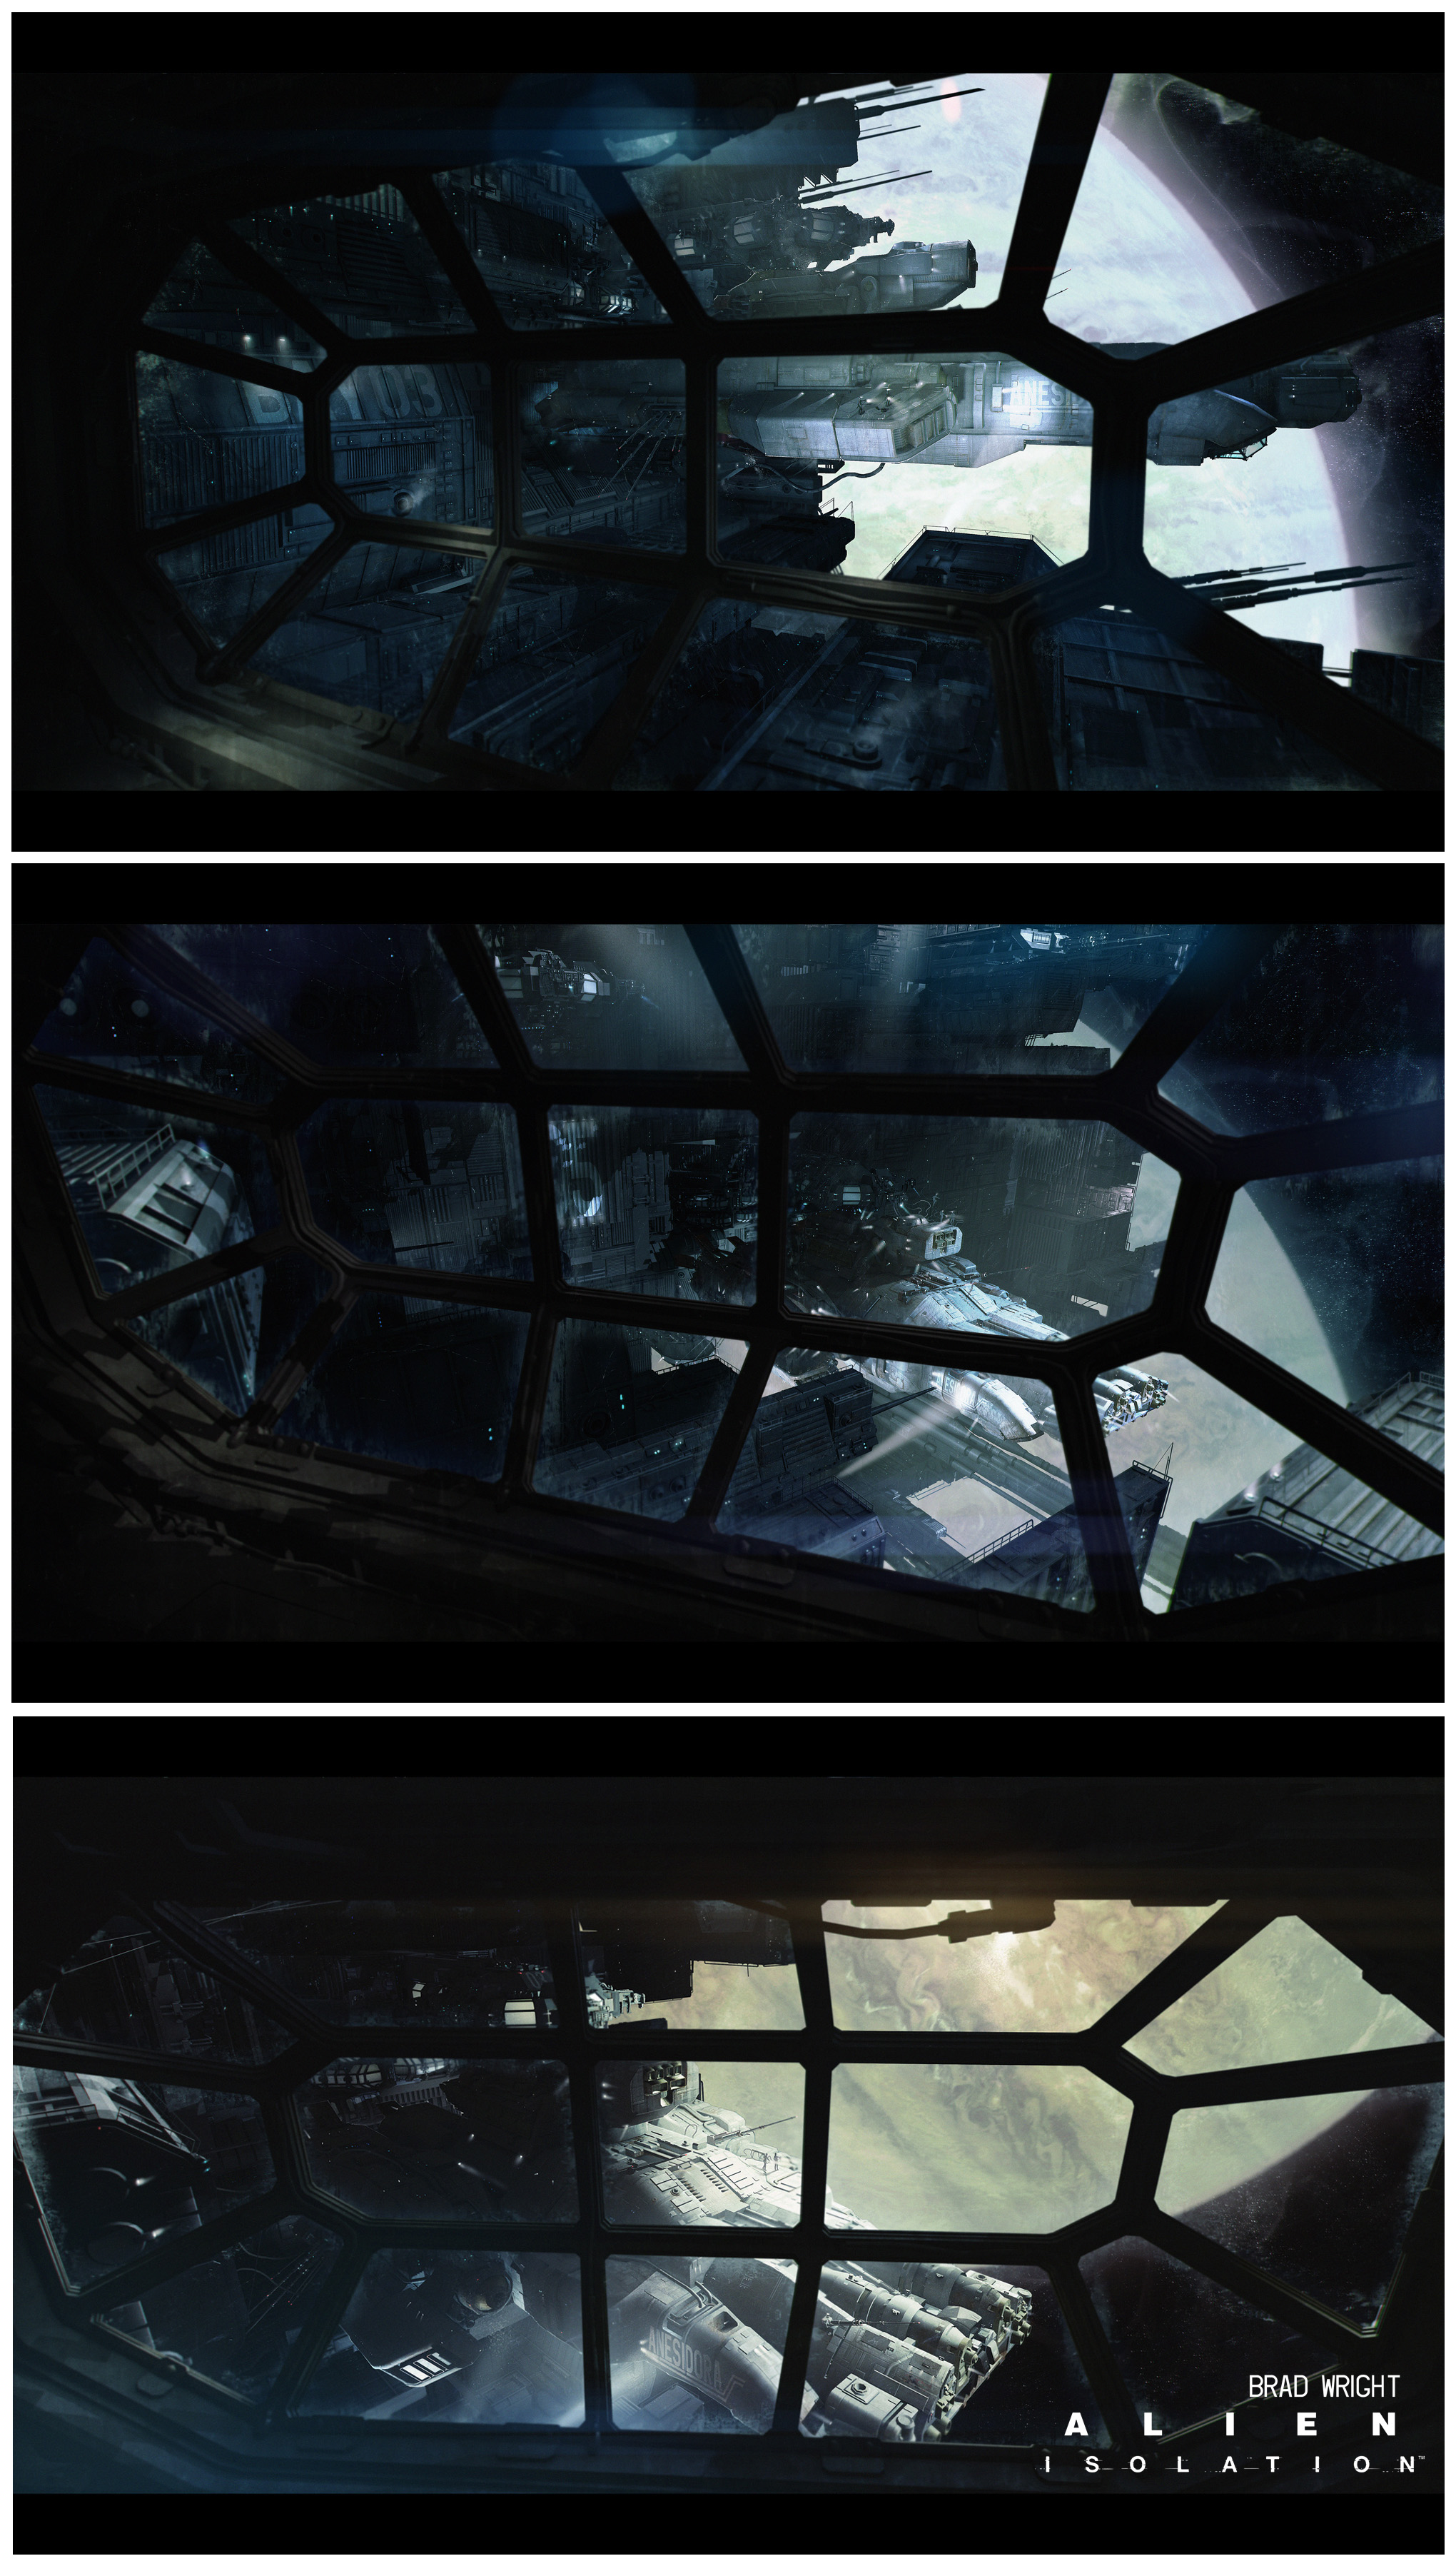 alien isolation art by brad wright 41 escape the level. Black Bedroom Furniture Sets. Home Design Ideas